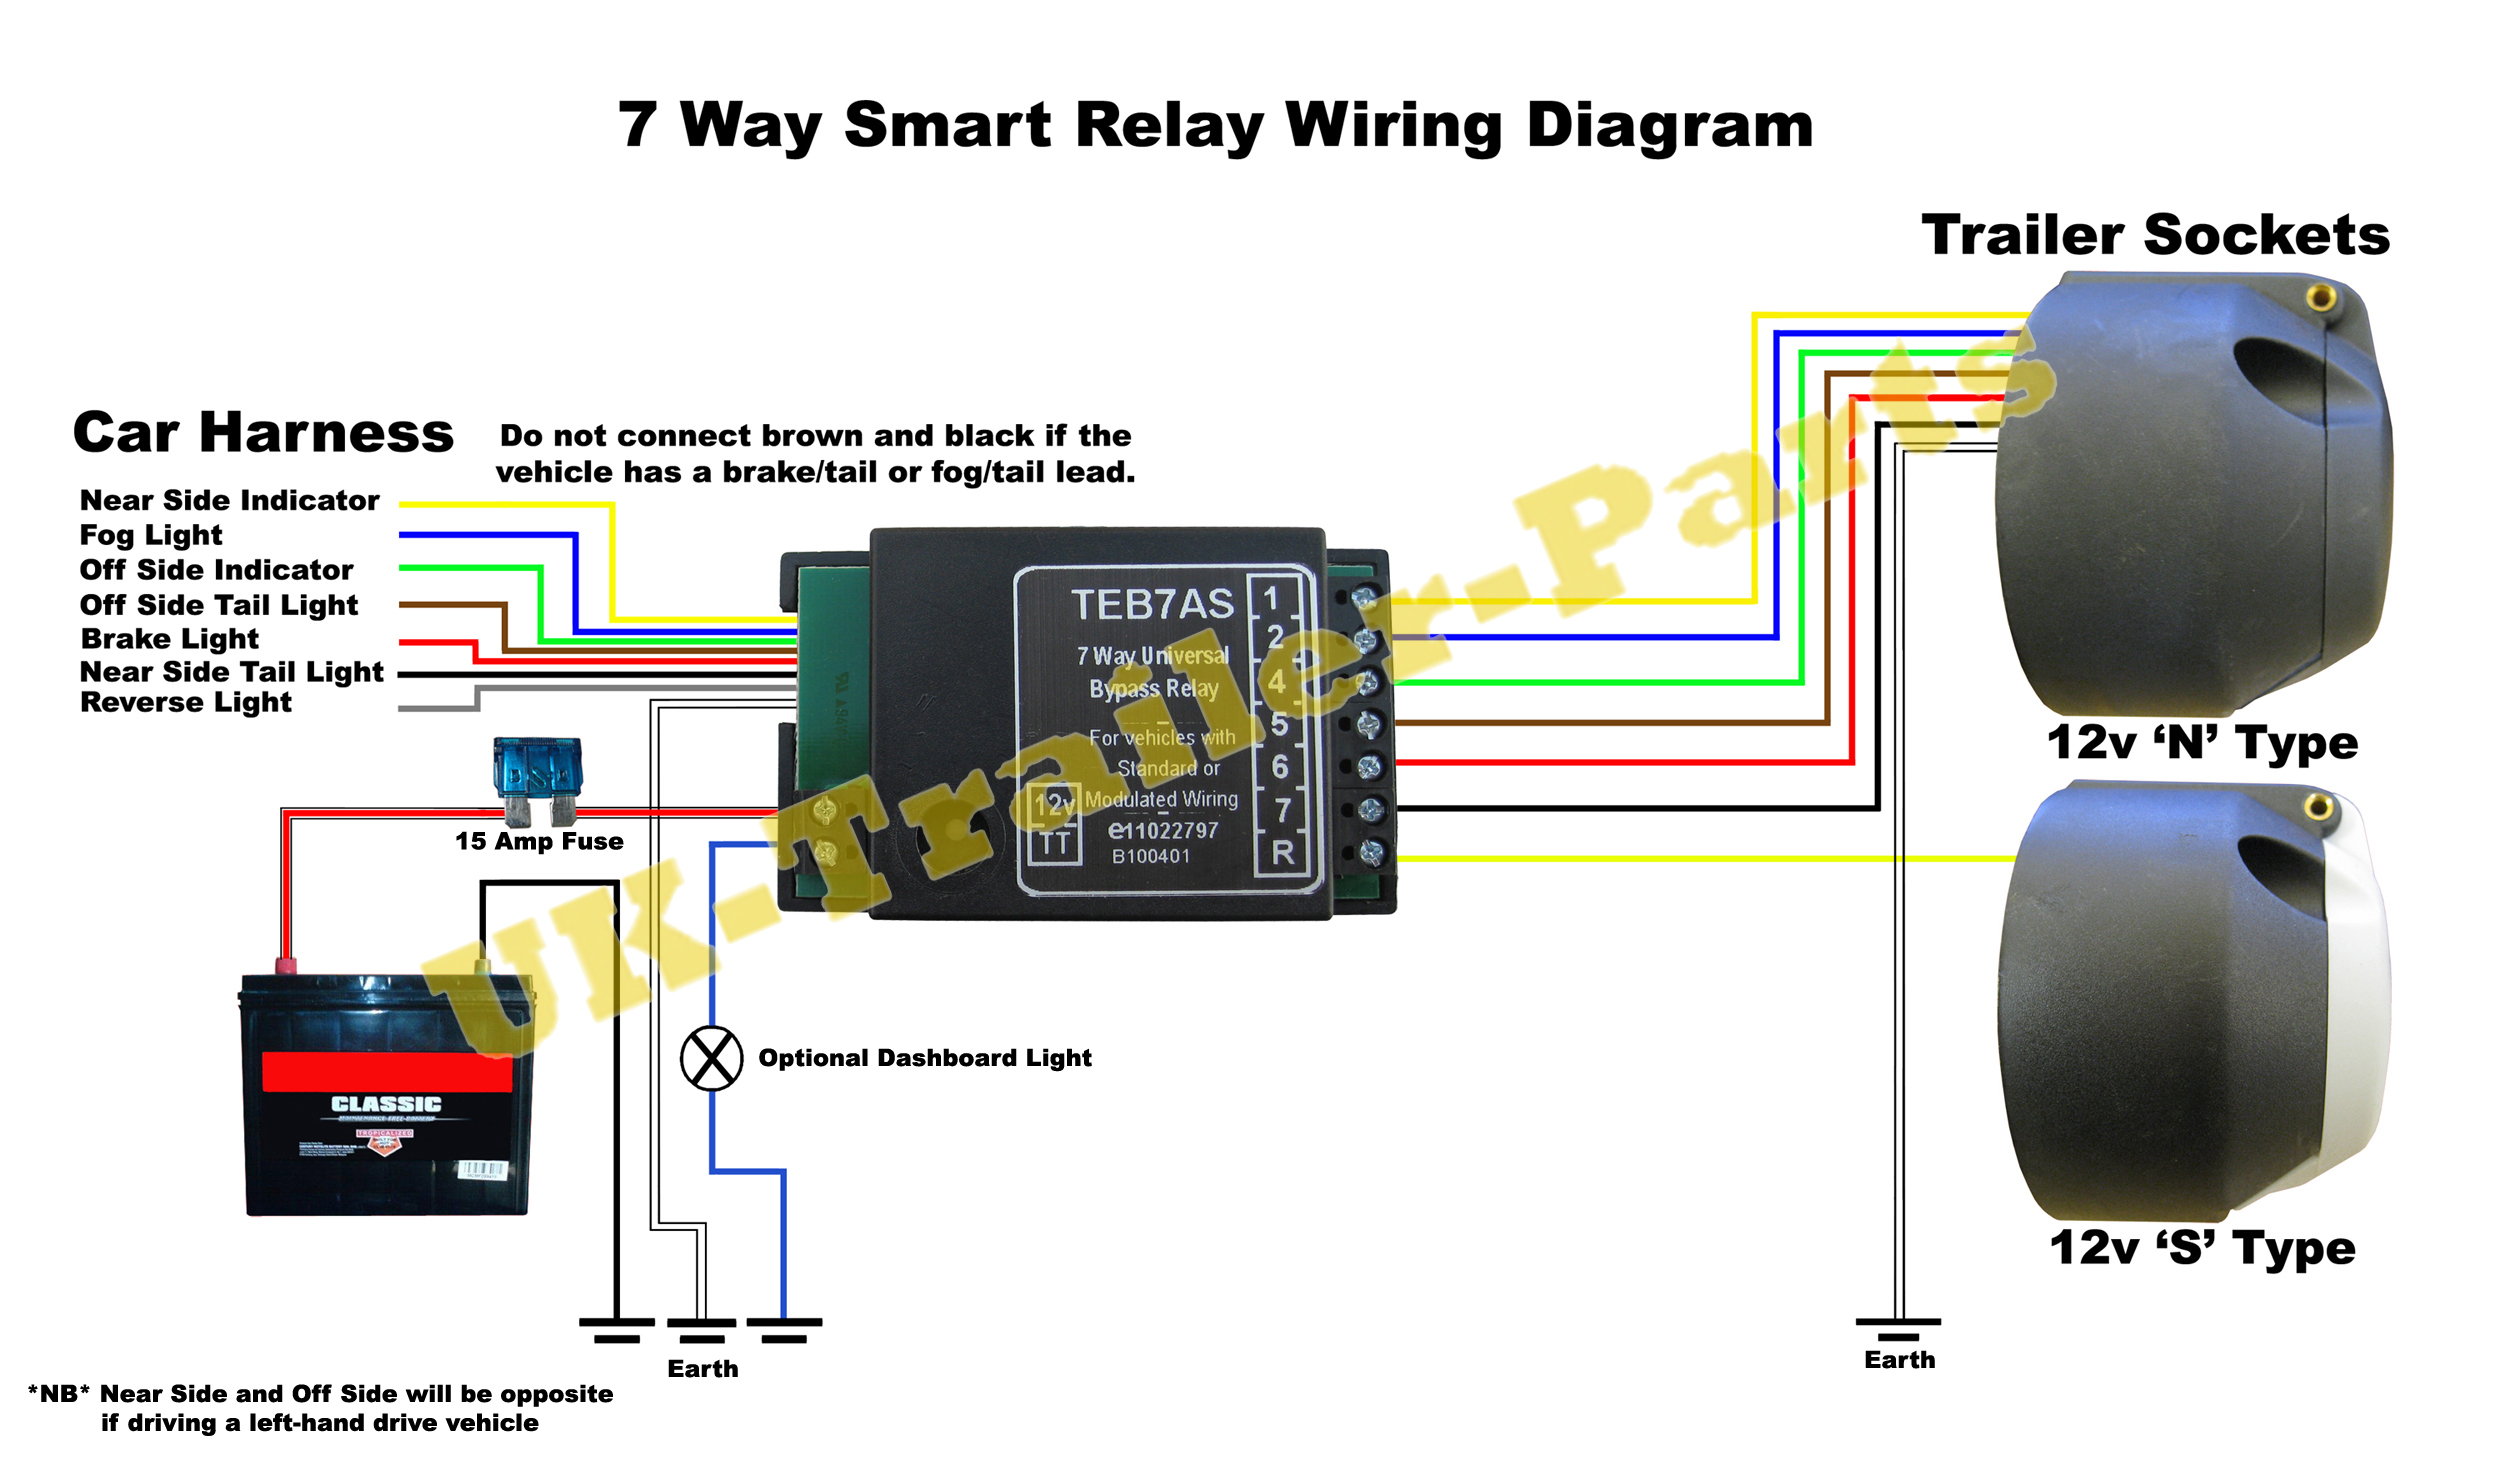 relay wiring diagram IkuKRrj trailer wiring diagram audi wiring diagrams instruction  at readyjetset.co